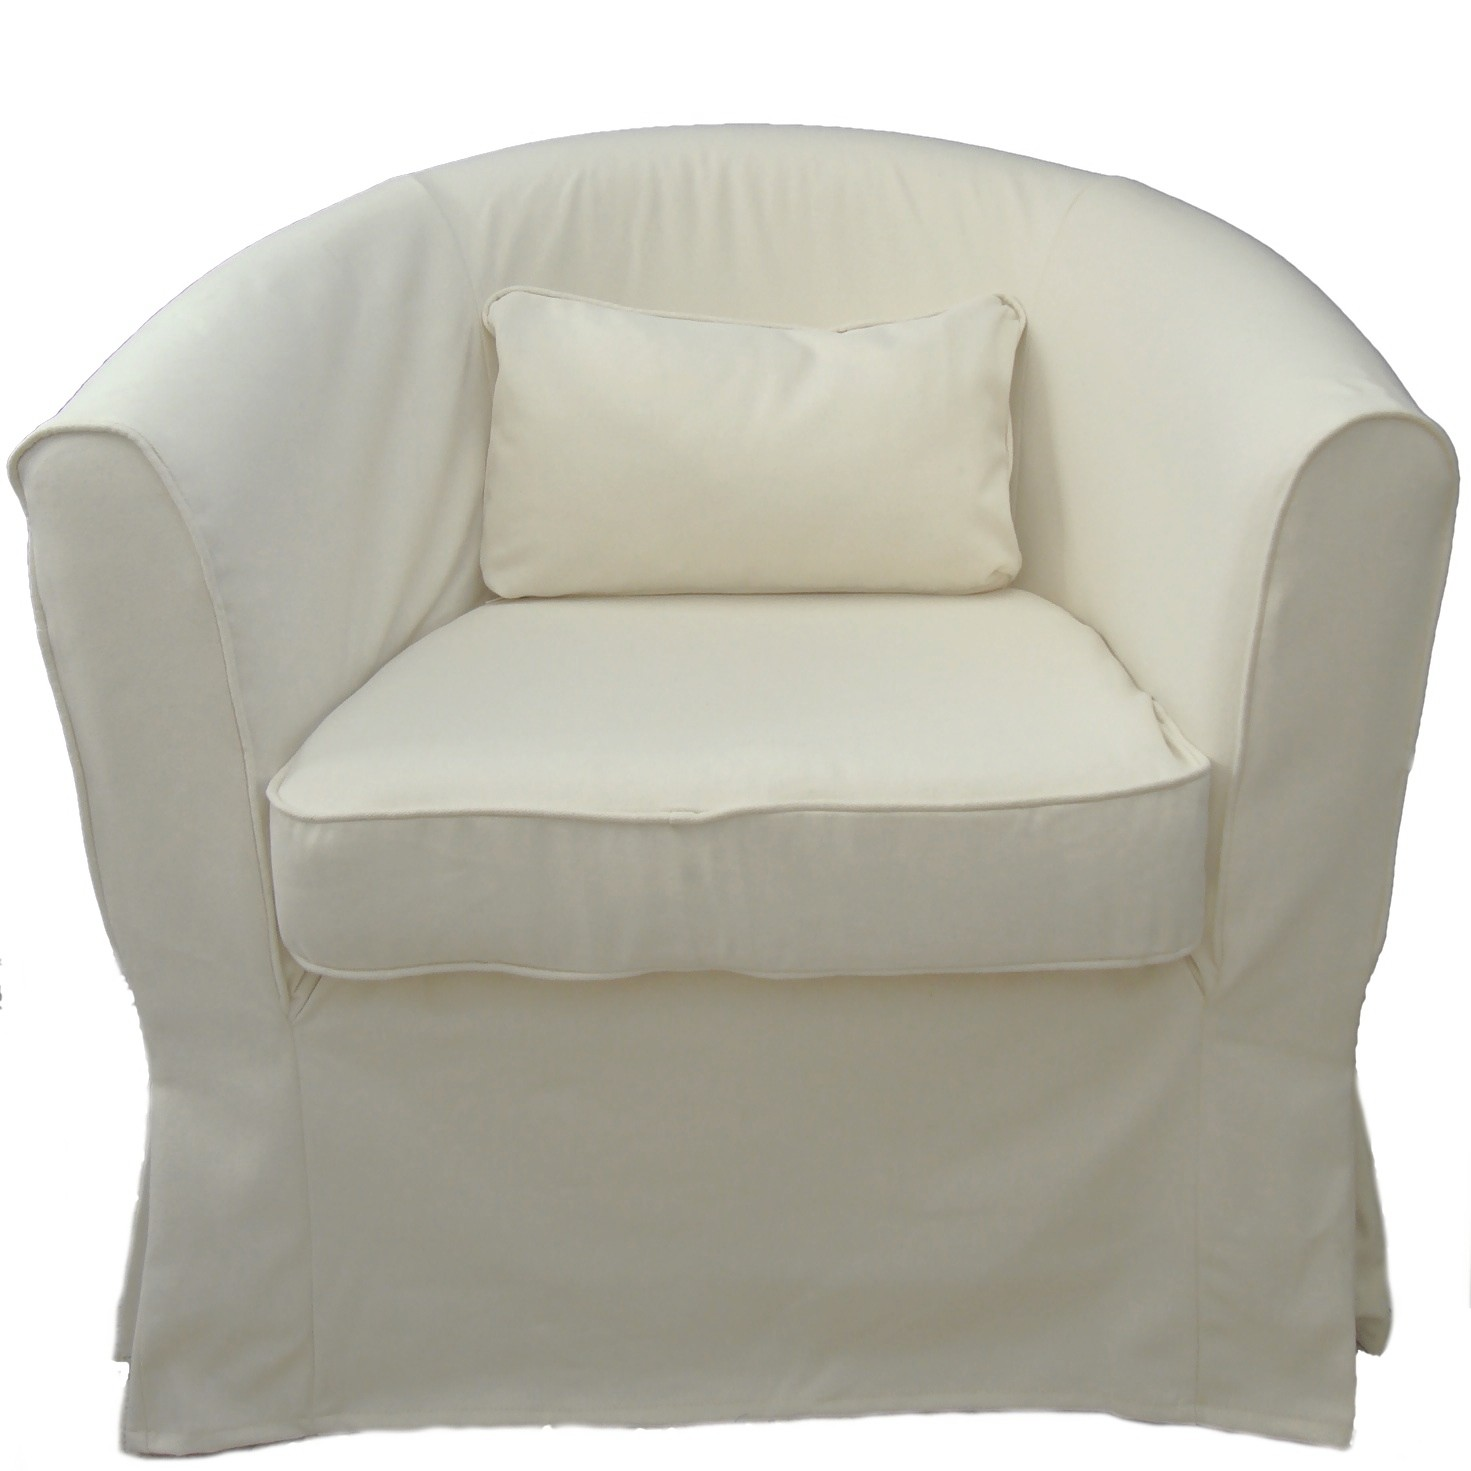 Get the attractive chairs with slip covers for chairs for Furniture covers